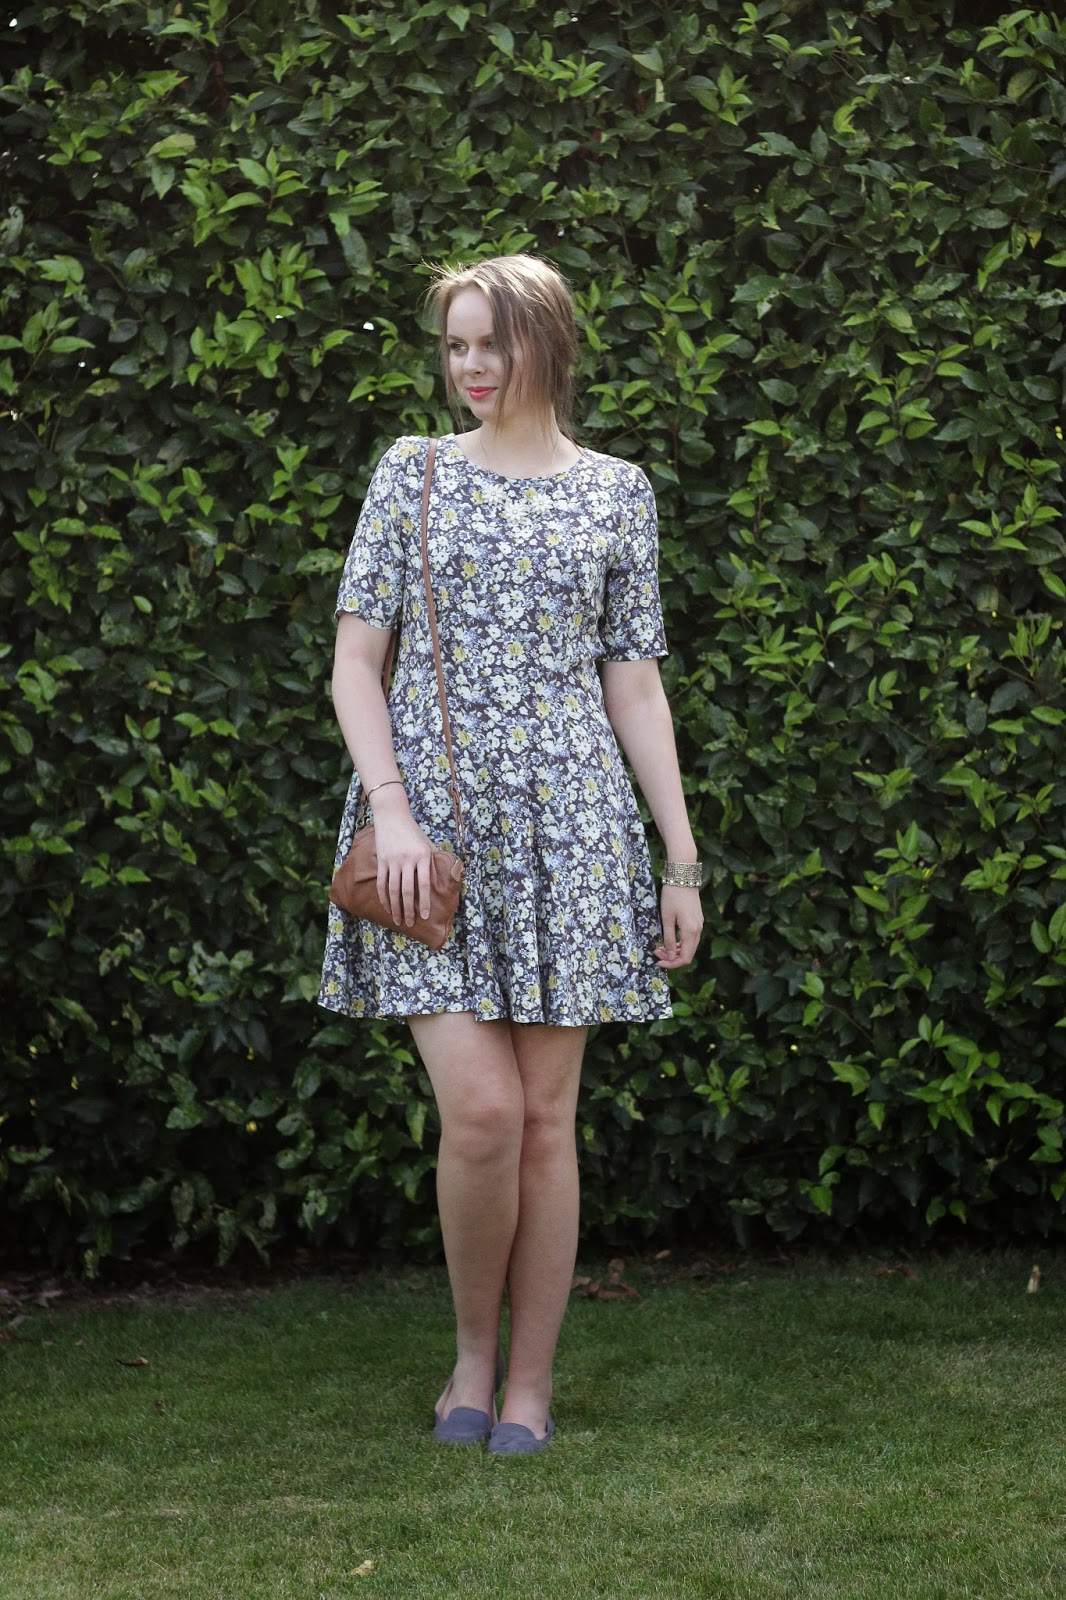 skater dress outfit of the day, h&m skater dress